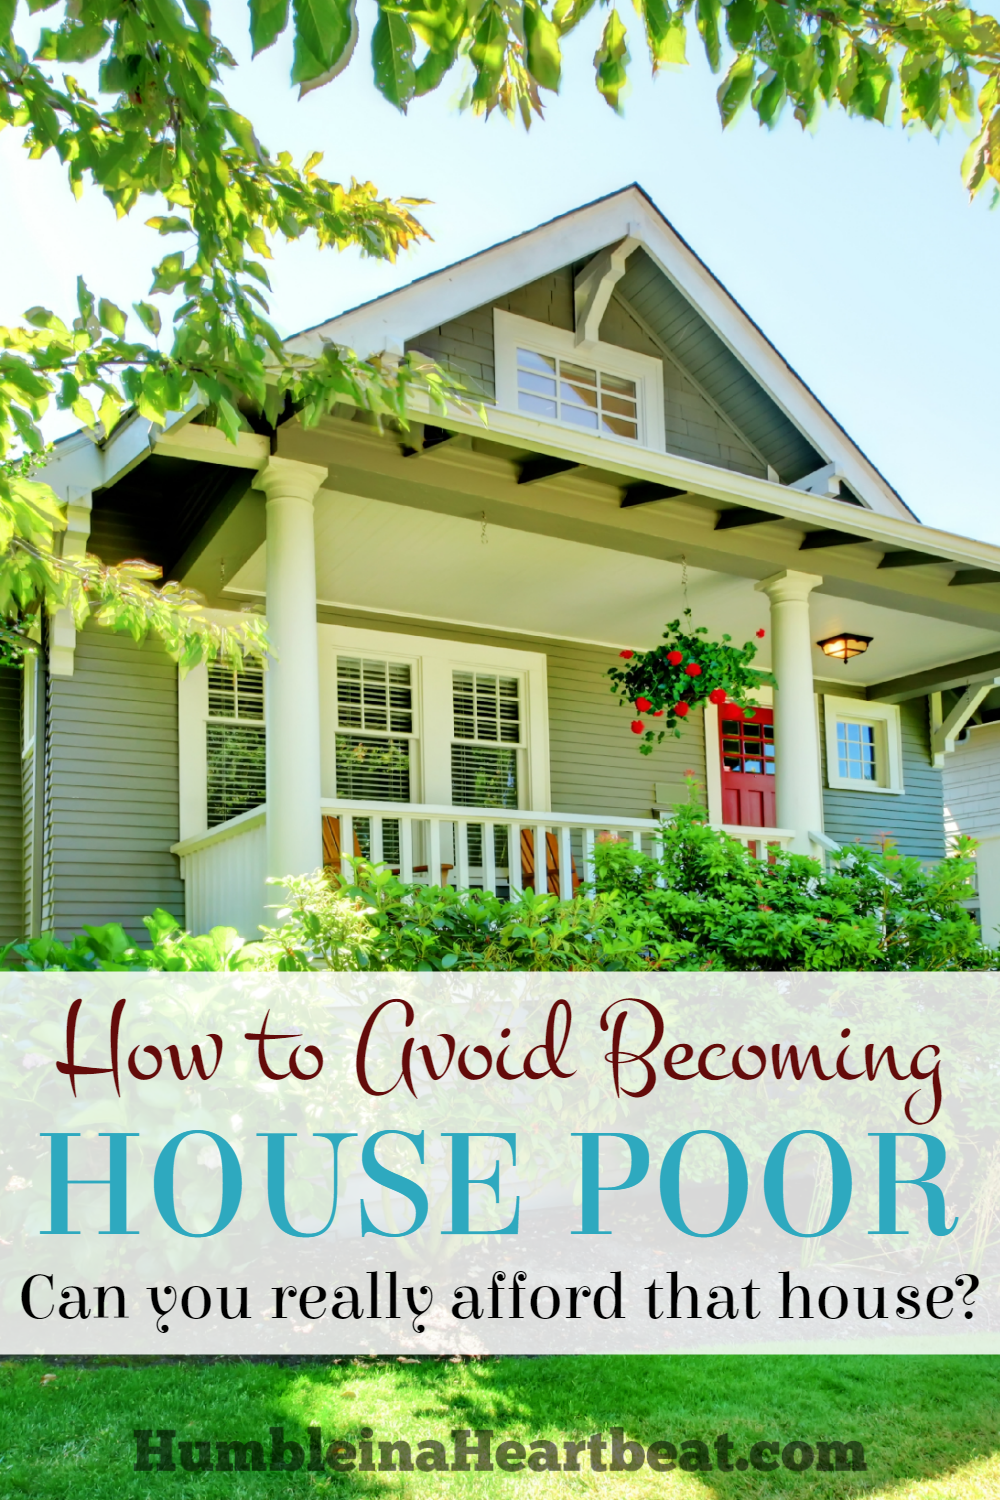 How to avoid becoming house poor humble in a heartbeat for Loan to build a house on land